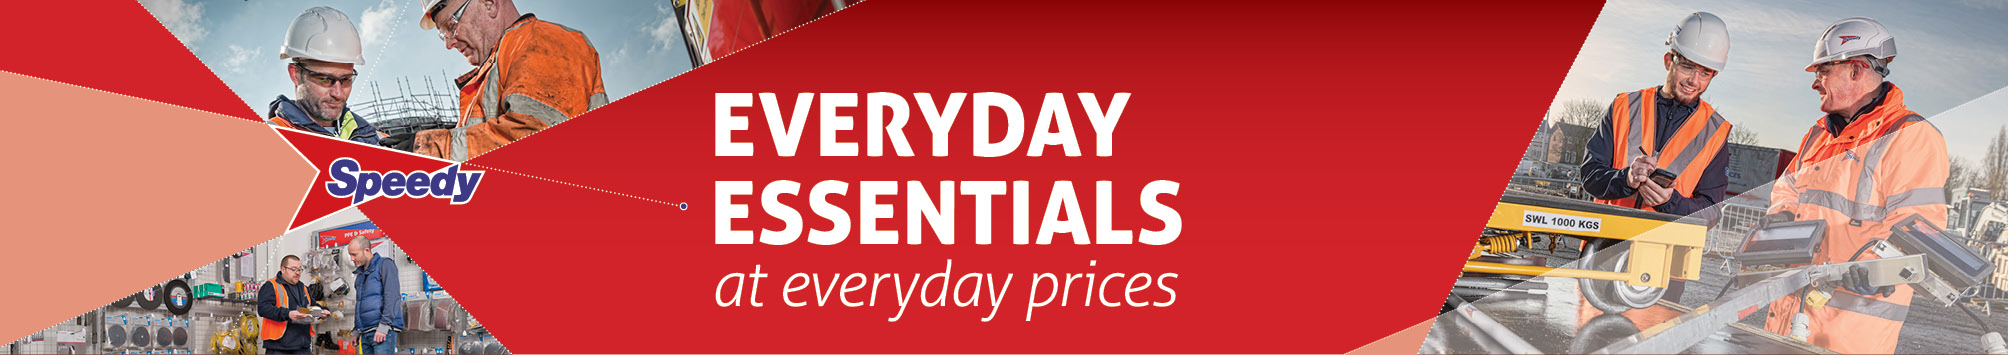 Everyday Essentials Landing Page Header.jpg